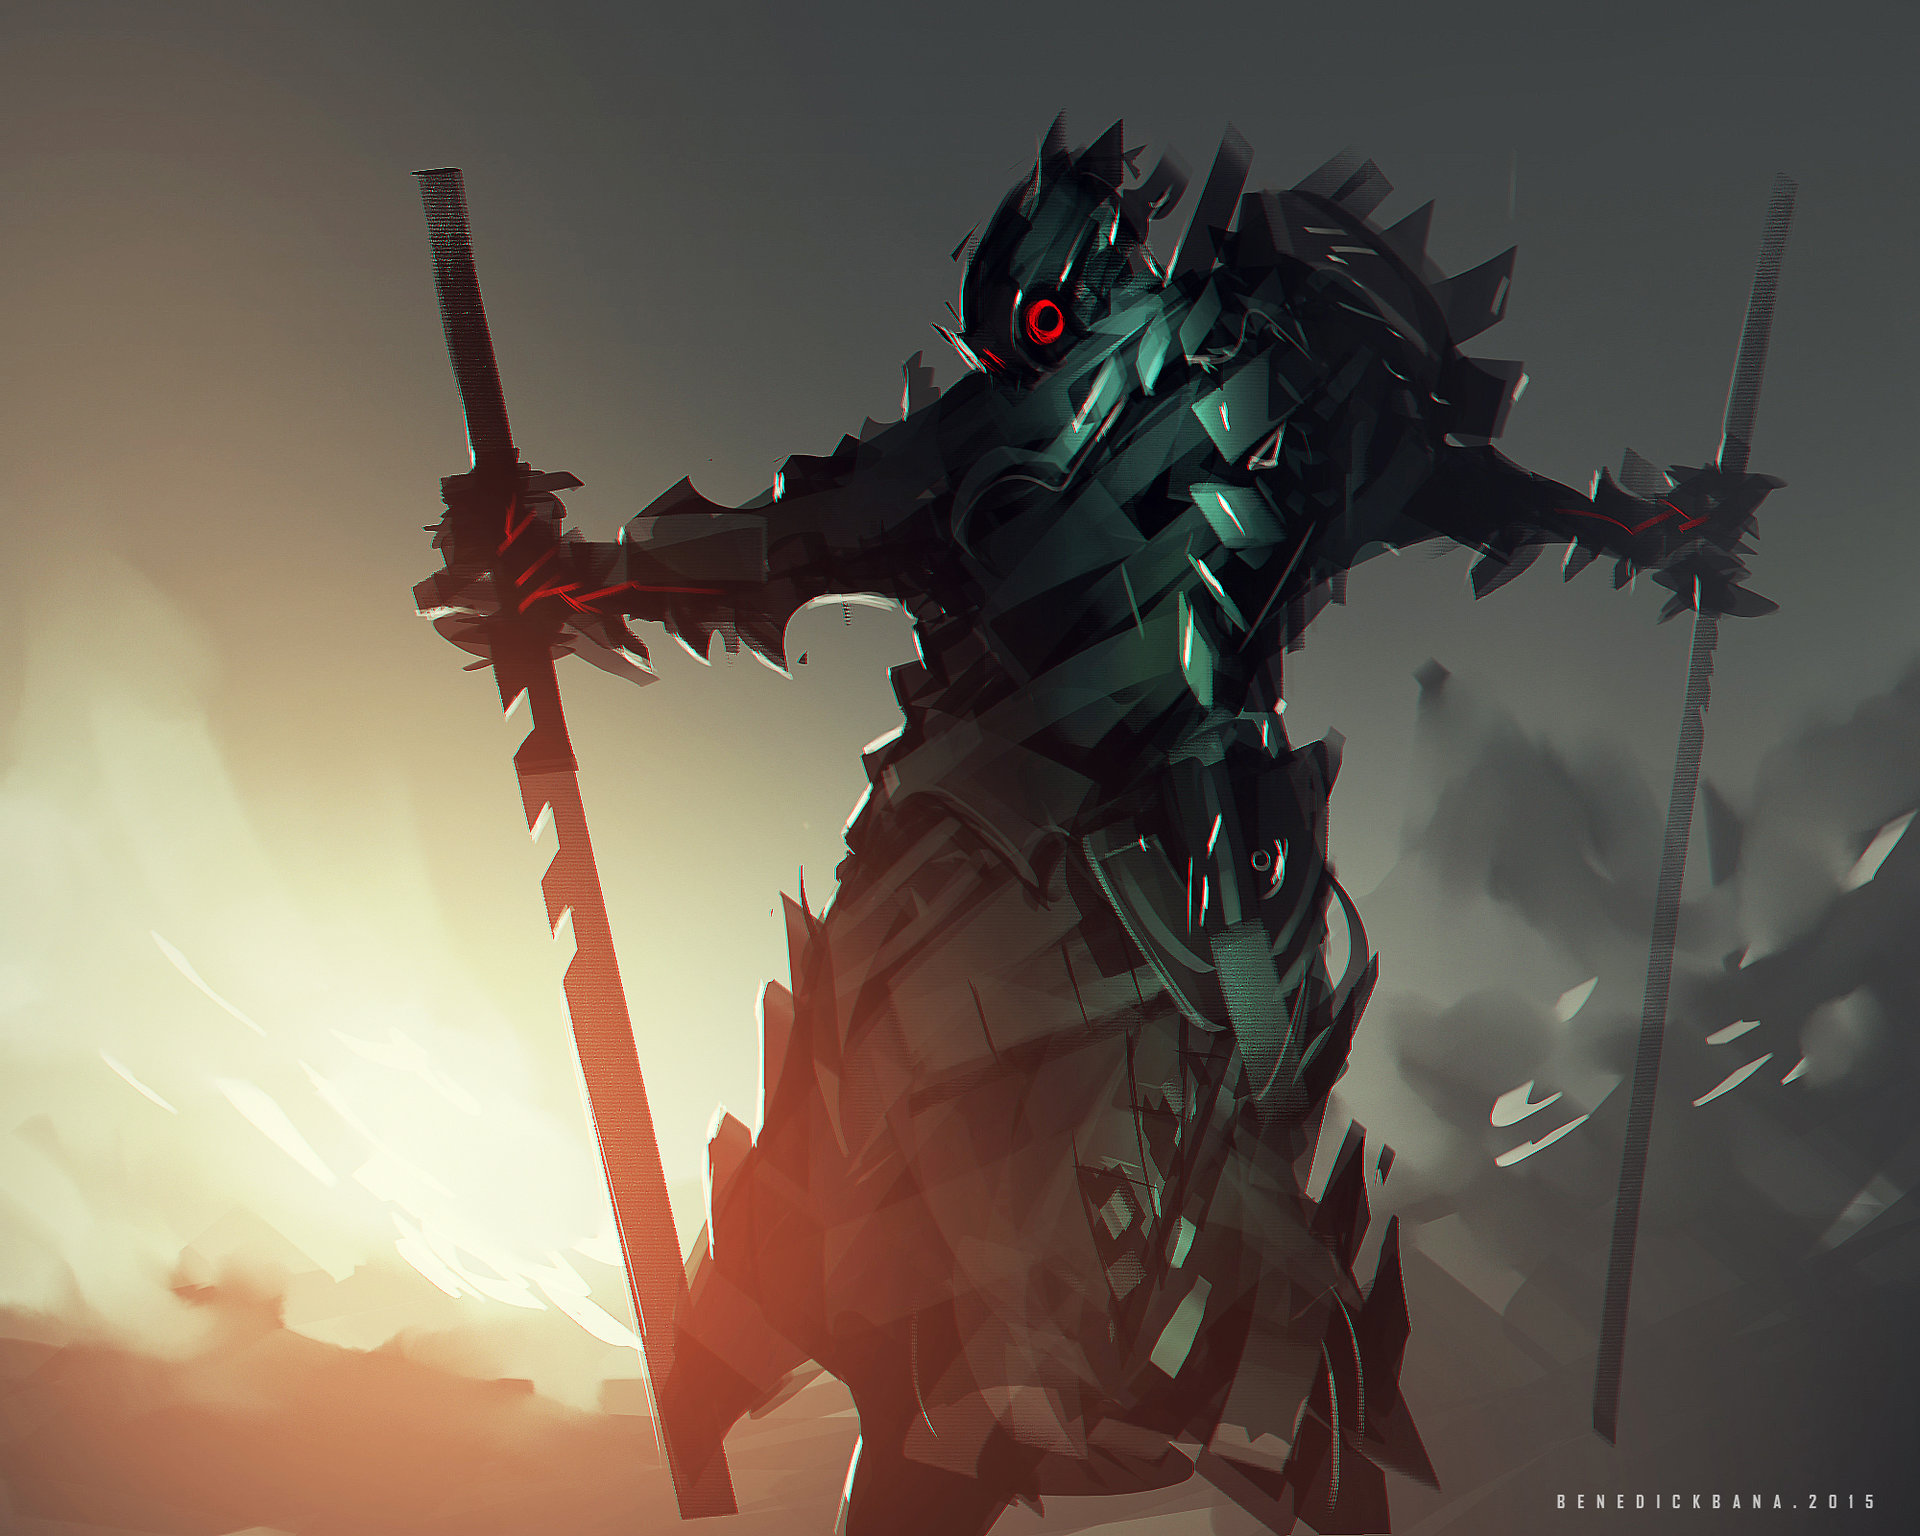 Benedick bana dark thorn king